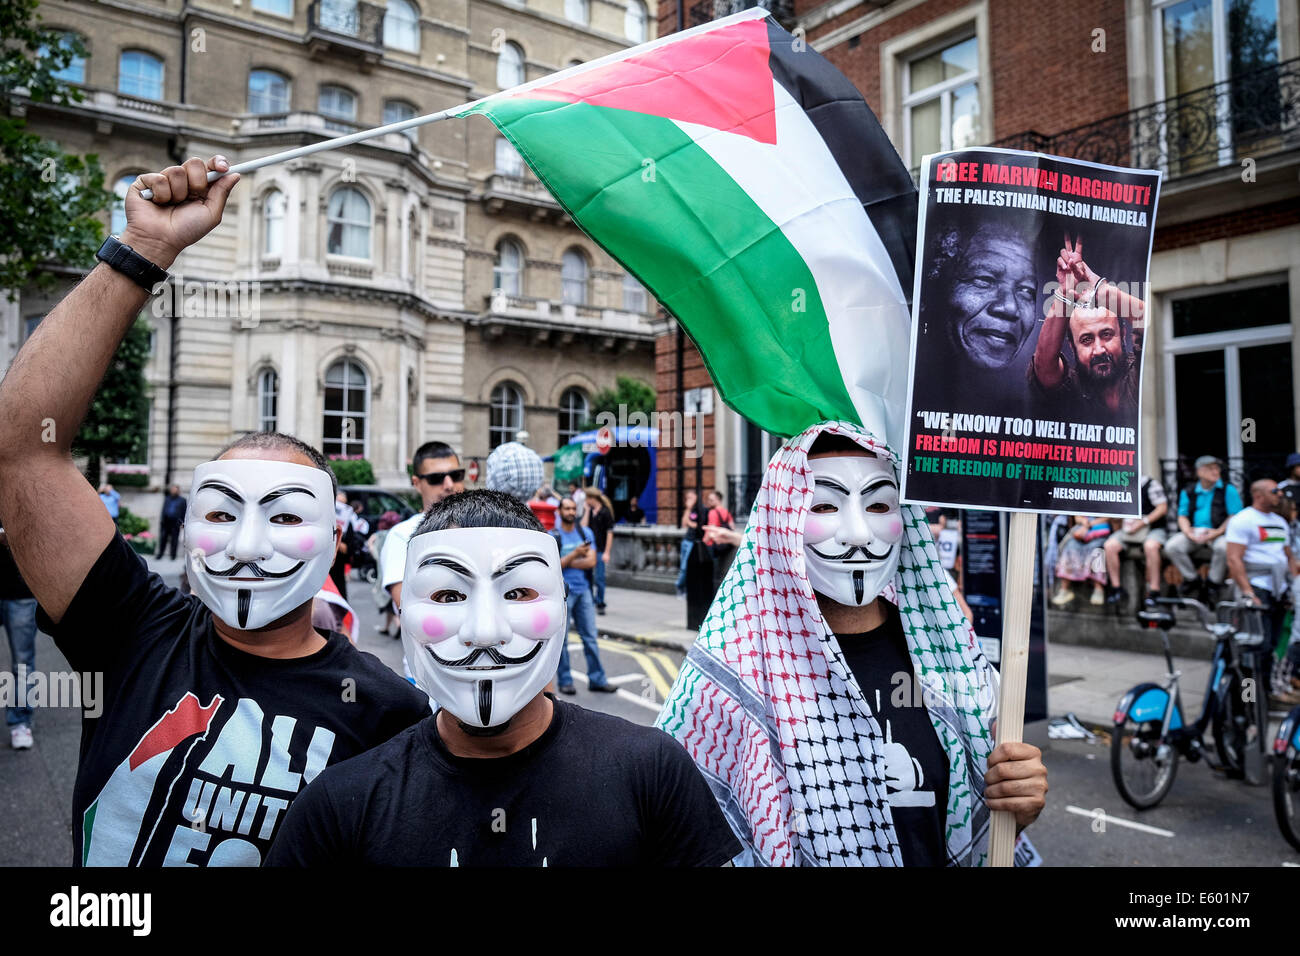 Portland Place, London, 9th August 2014. Masked Palestinian protesters at a demonstration in support of Gaza.   - Stock Image